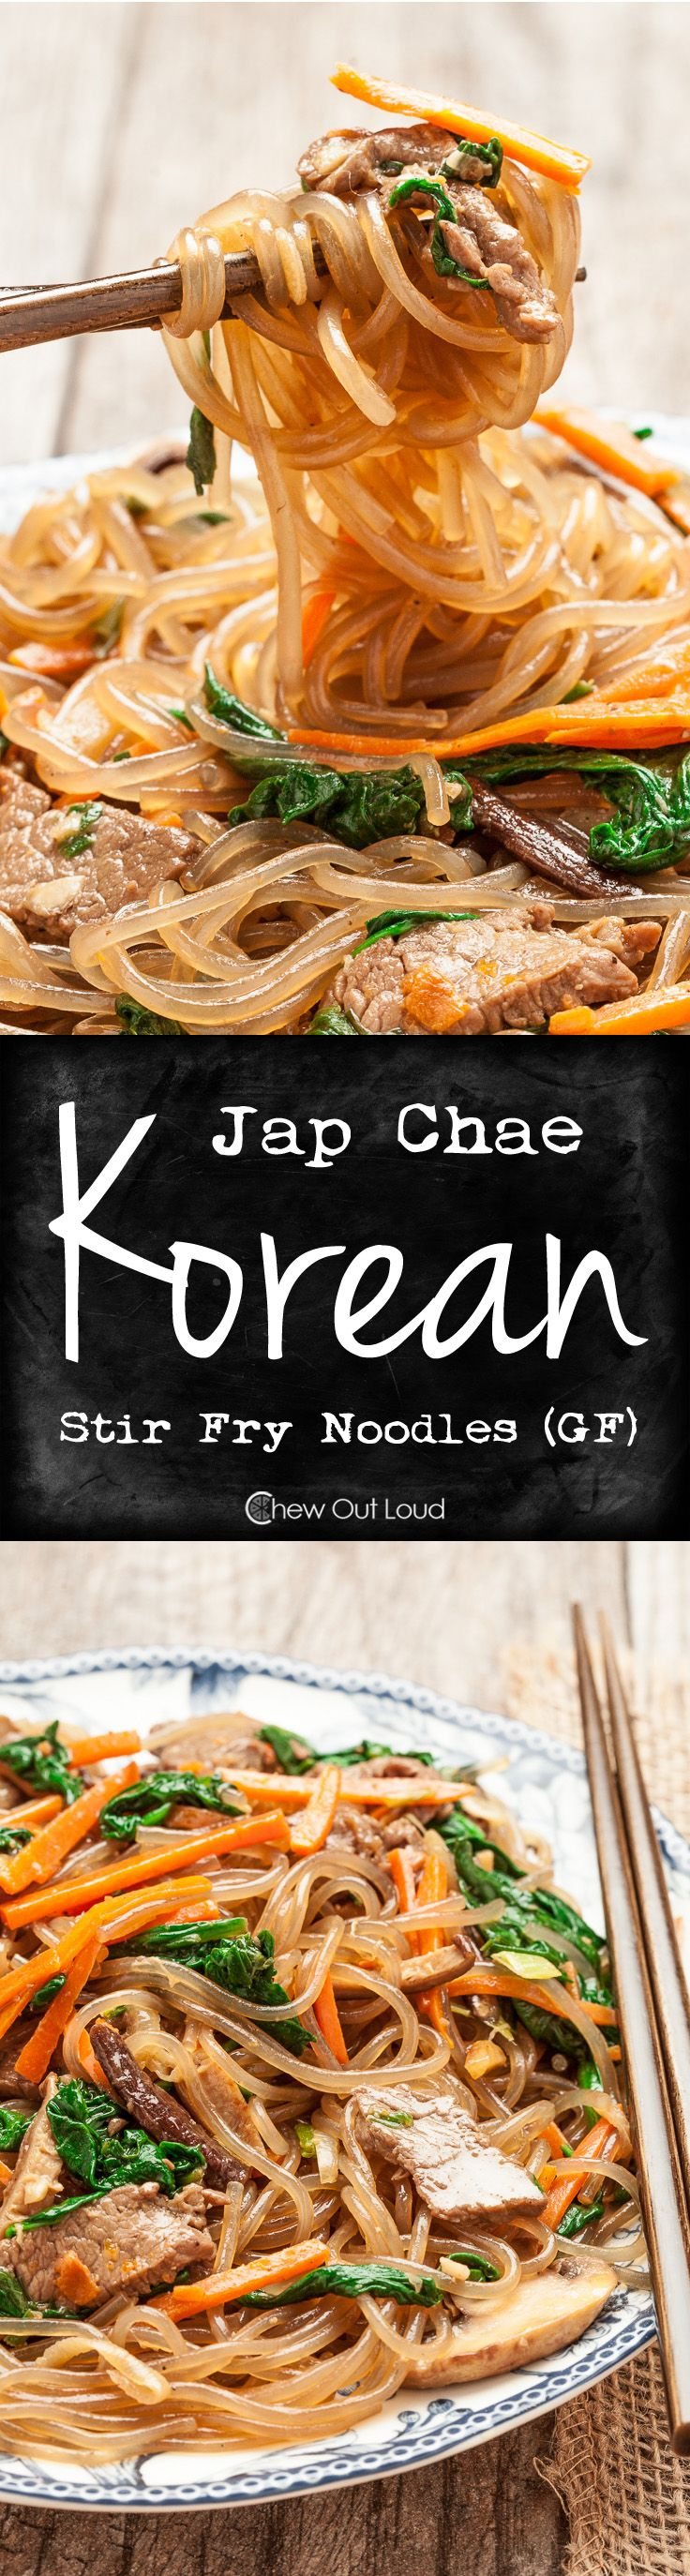 Jap Chae (Korean Stir Fry Noodles - GF) - Healthy, flavorful, chewy, and totally addictive #recipe #asian